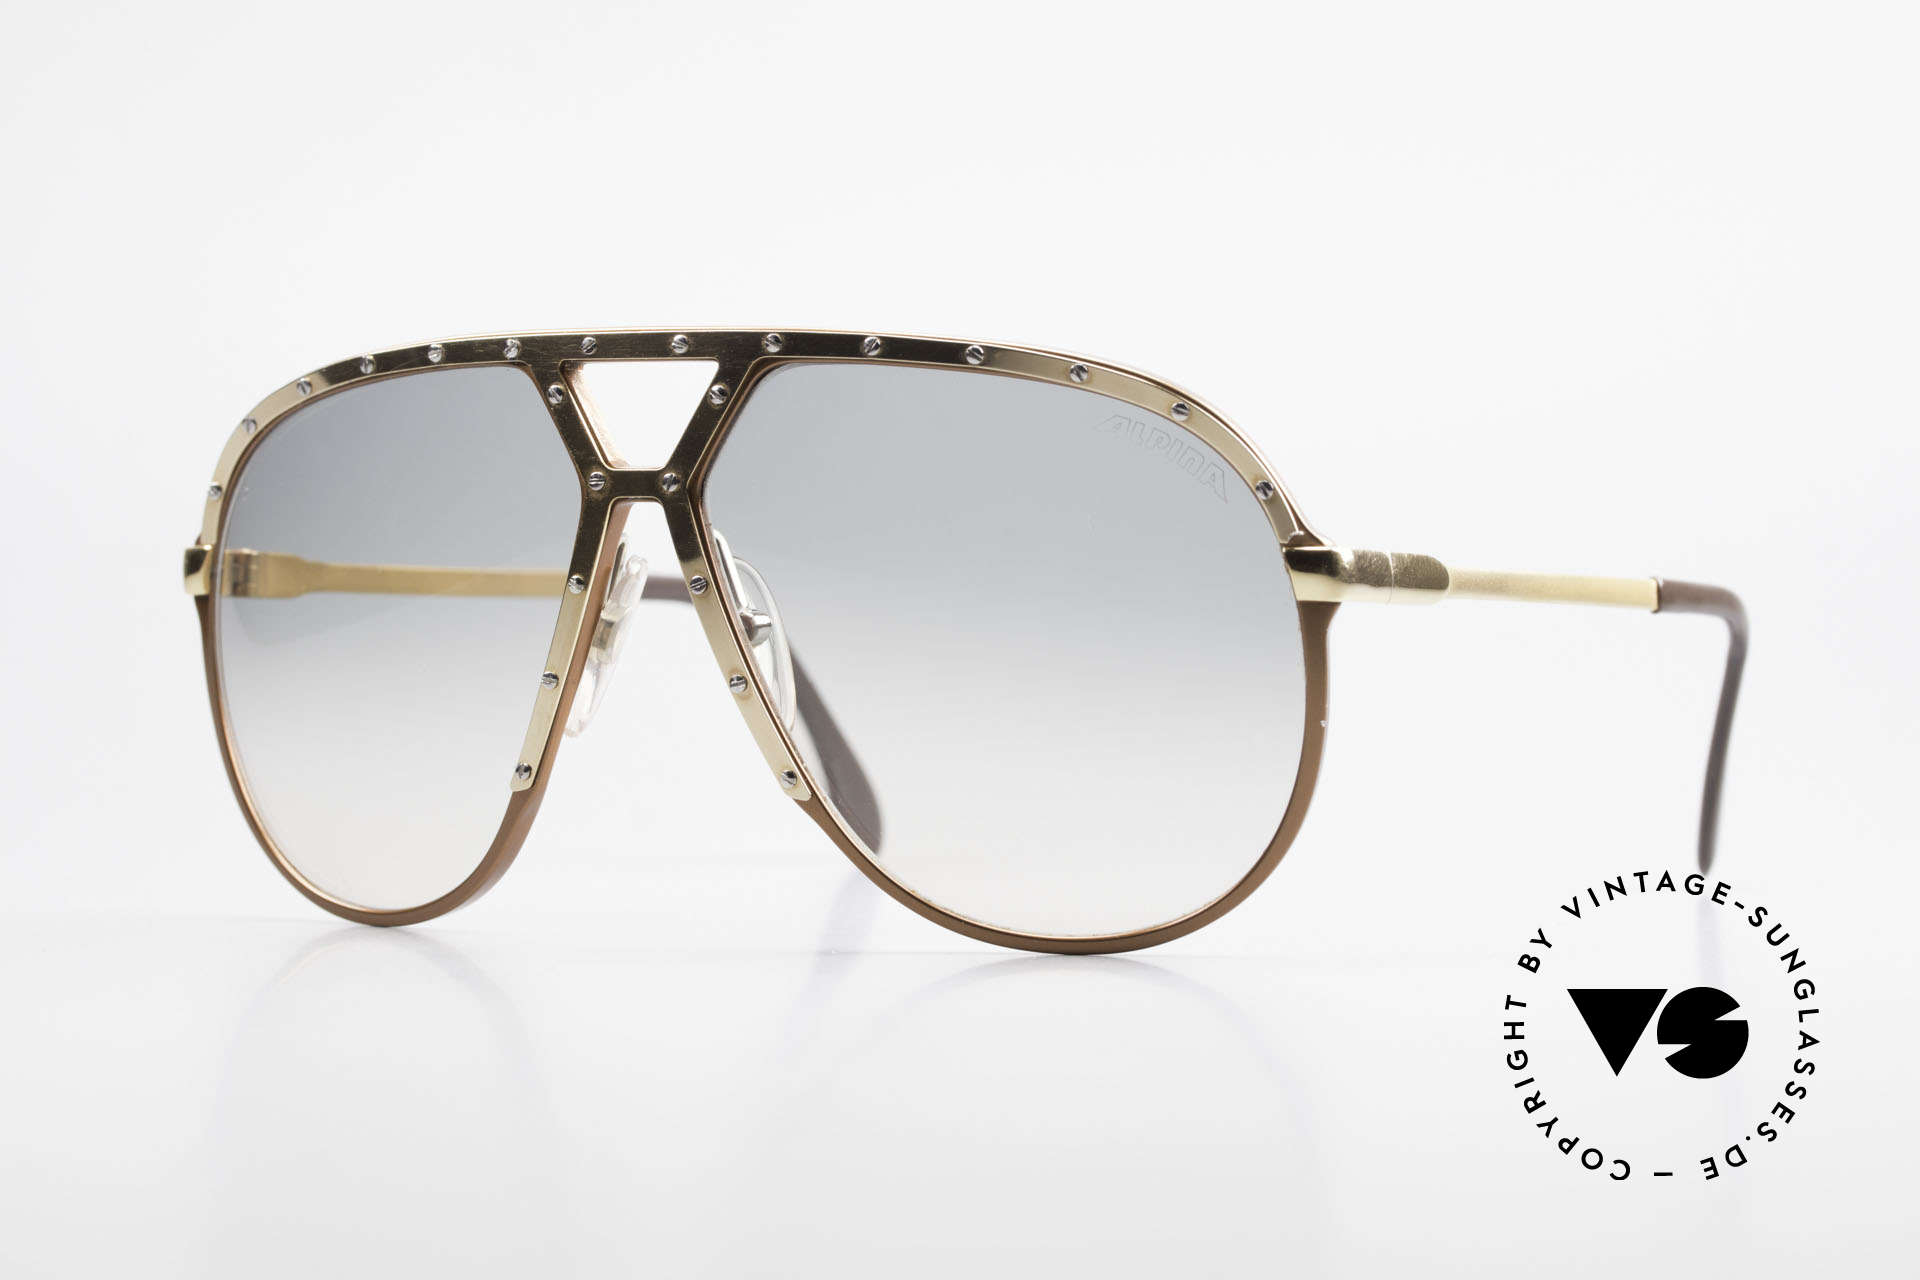 Alpina M1 Iconic 80's Shades XL Hip Hop, iconic 80's designer aviator shades by ALPINA, Made for Men